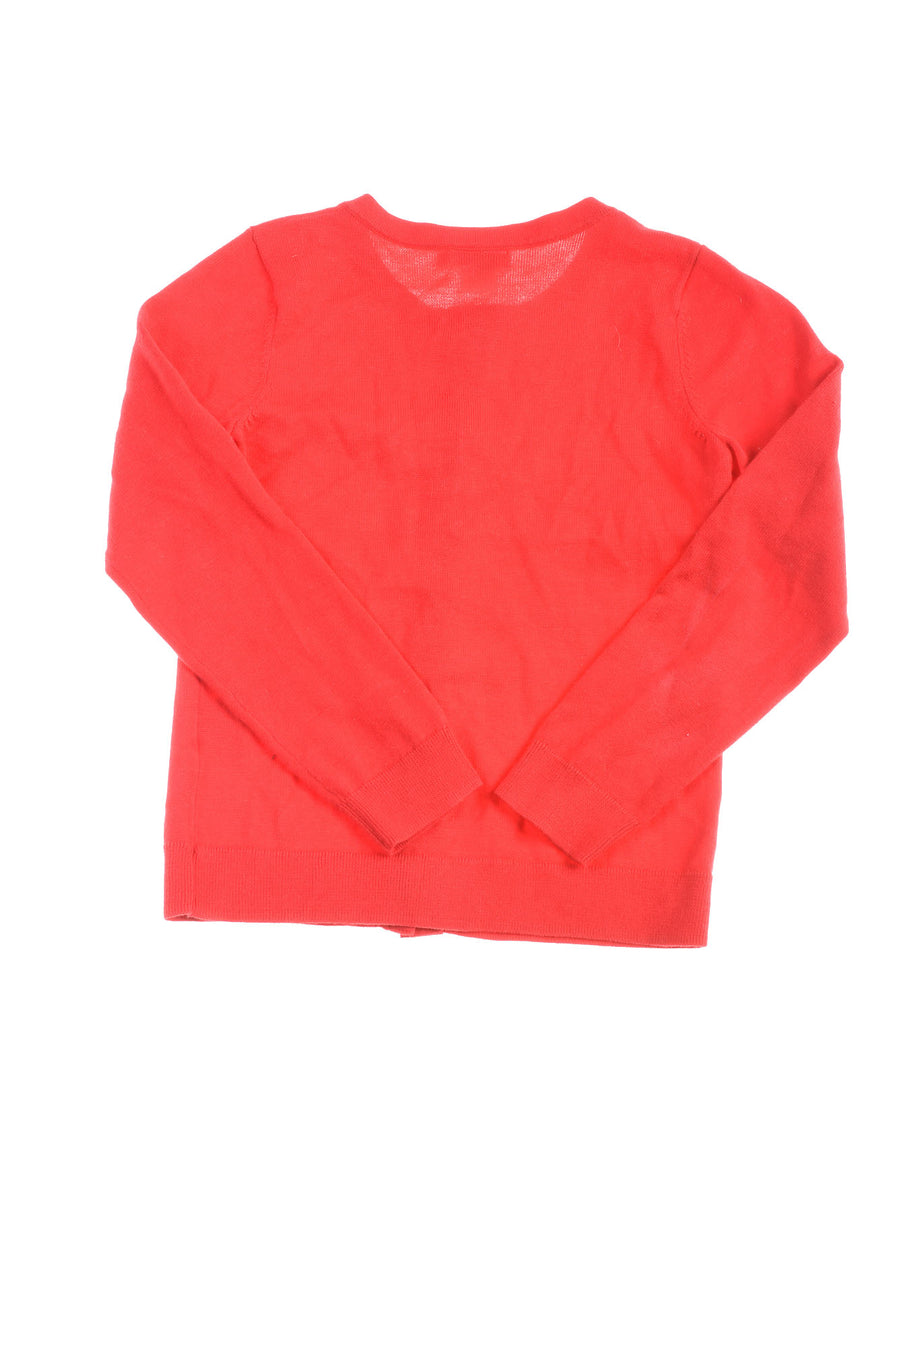 USED Vineyard Vines Girl's Top Medium Red